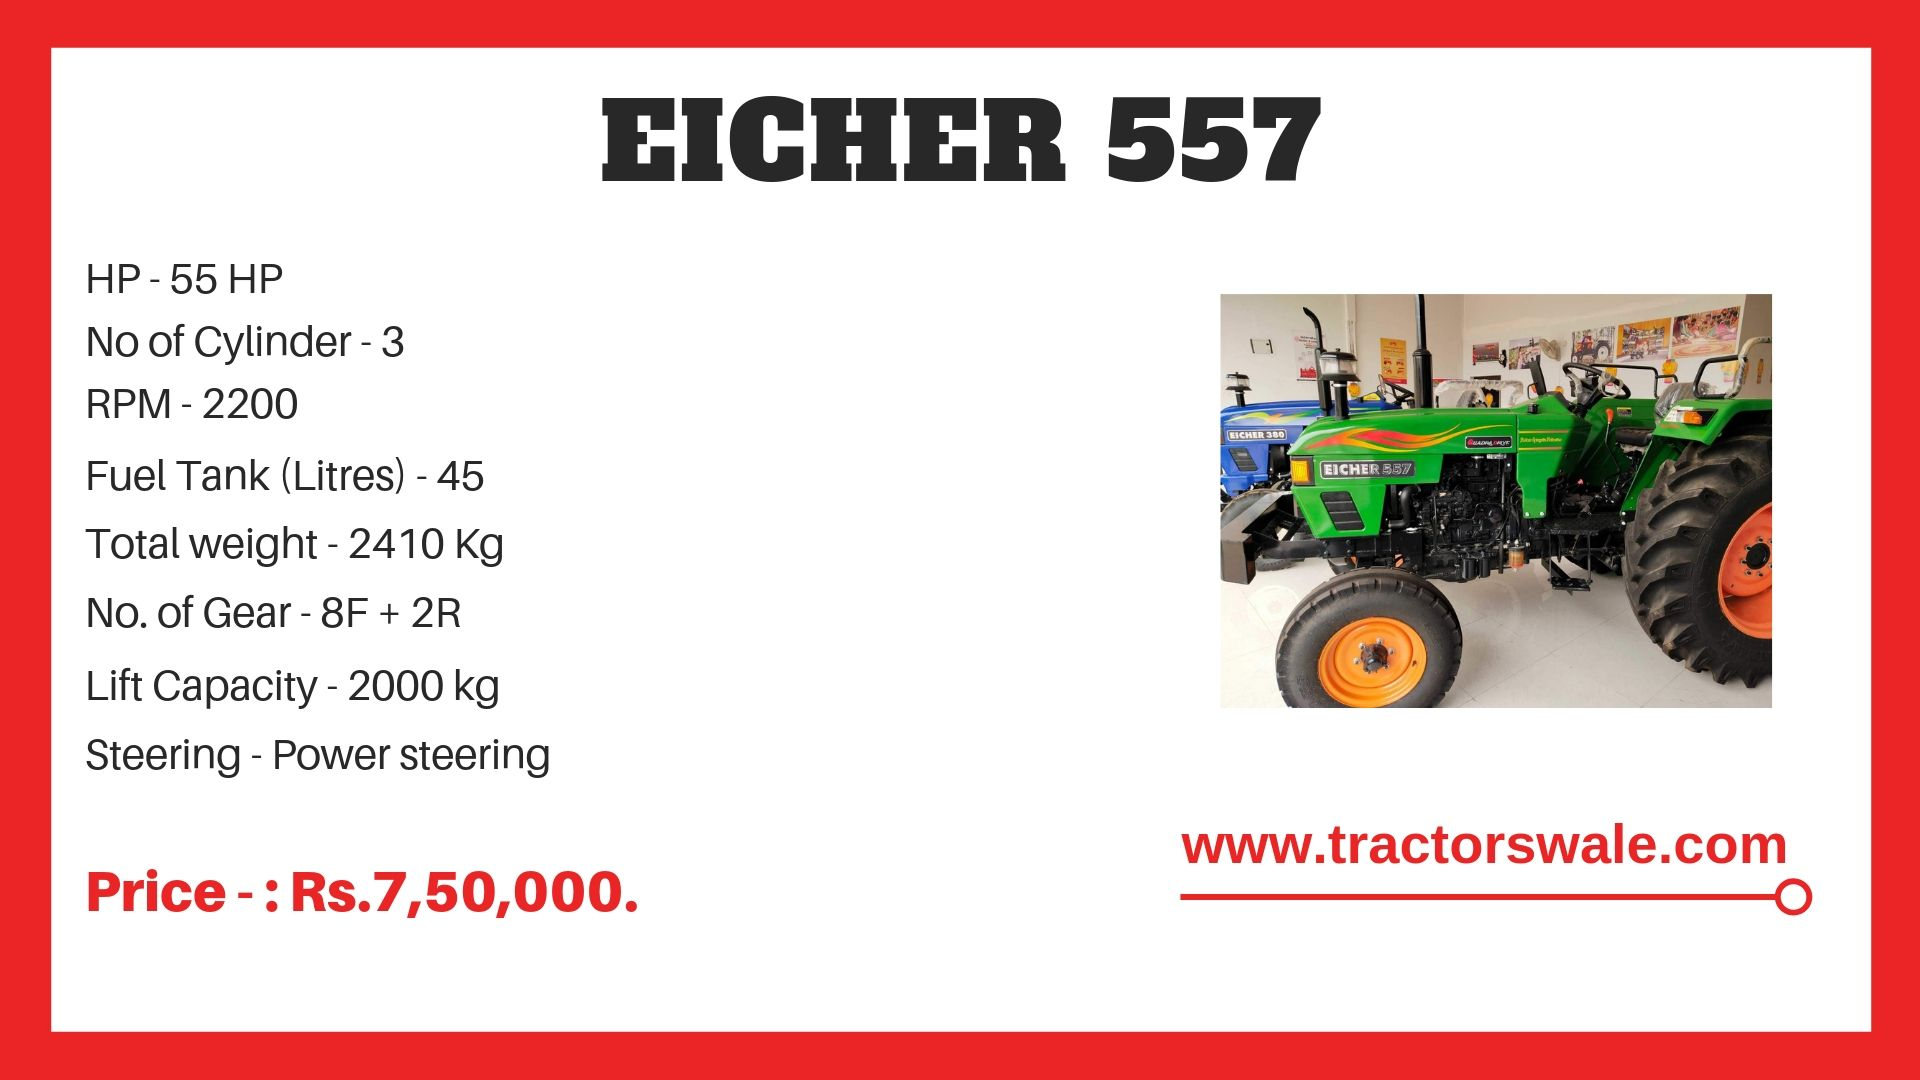 Eicher 557 Tractor Specifications